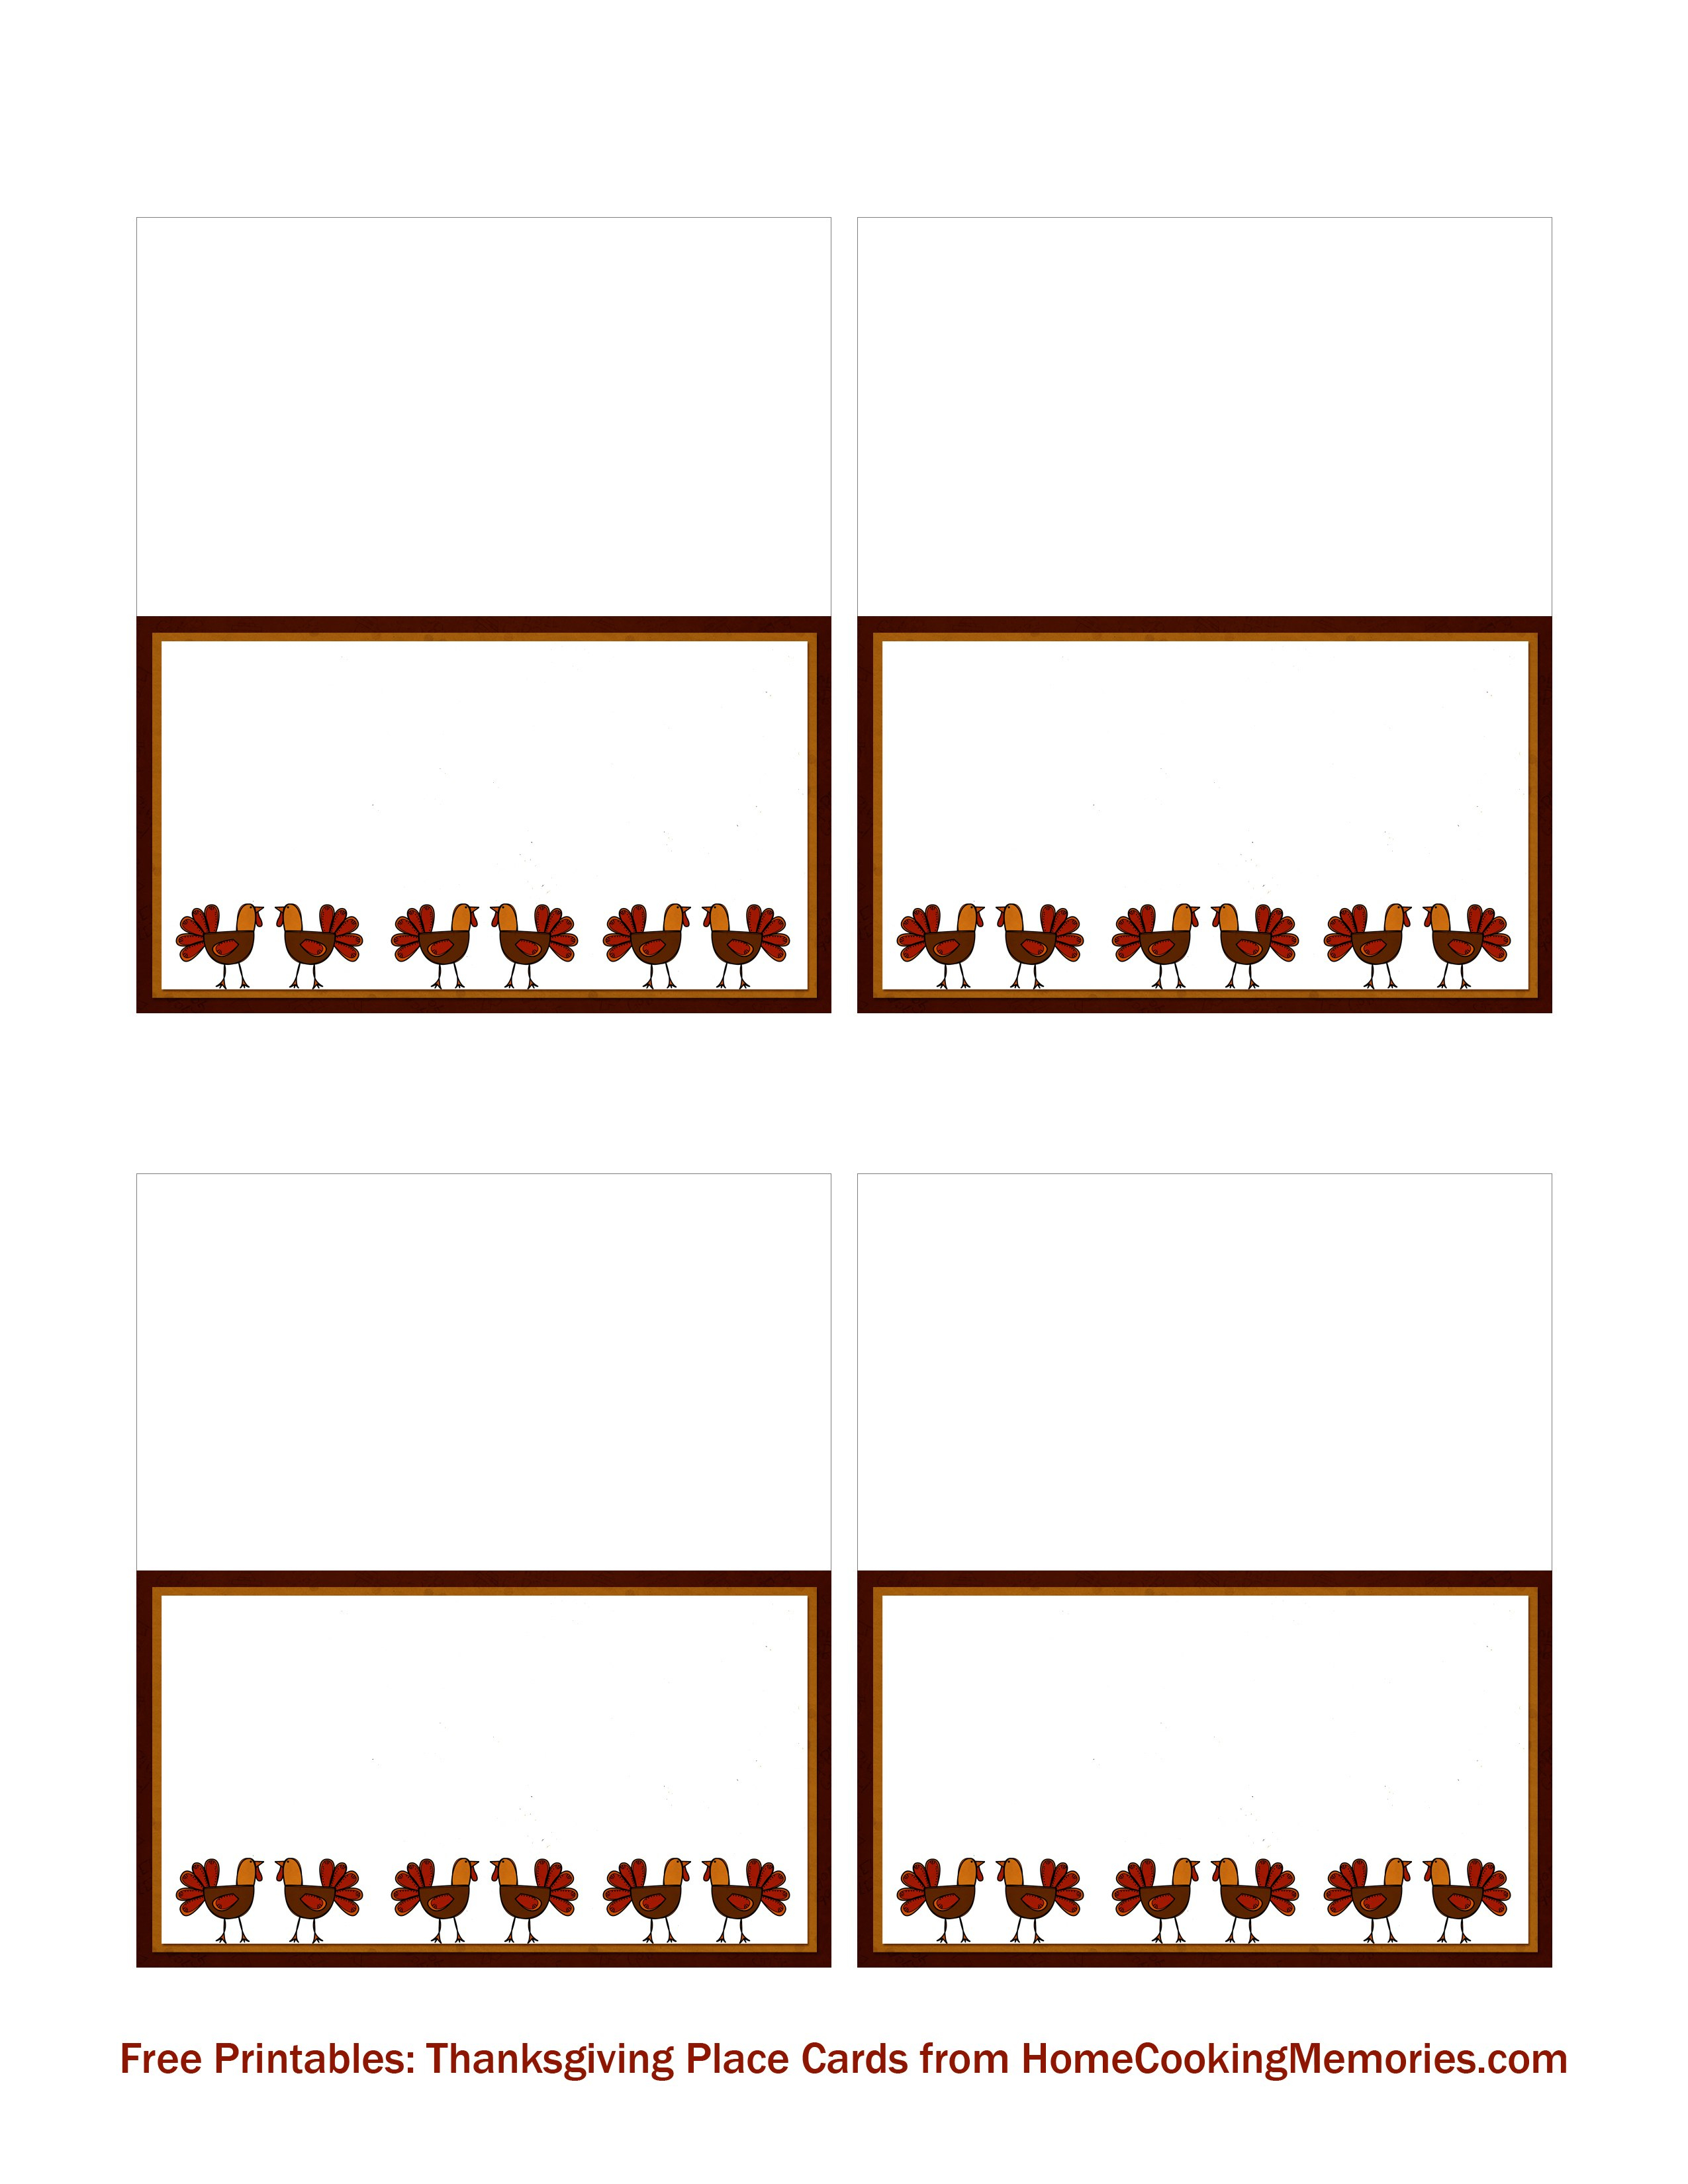 Free Printables Thanksgiving Place Cards  Home Cooking Memories Regarding Thanksgiving Place Card Templates